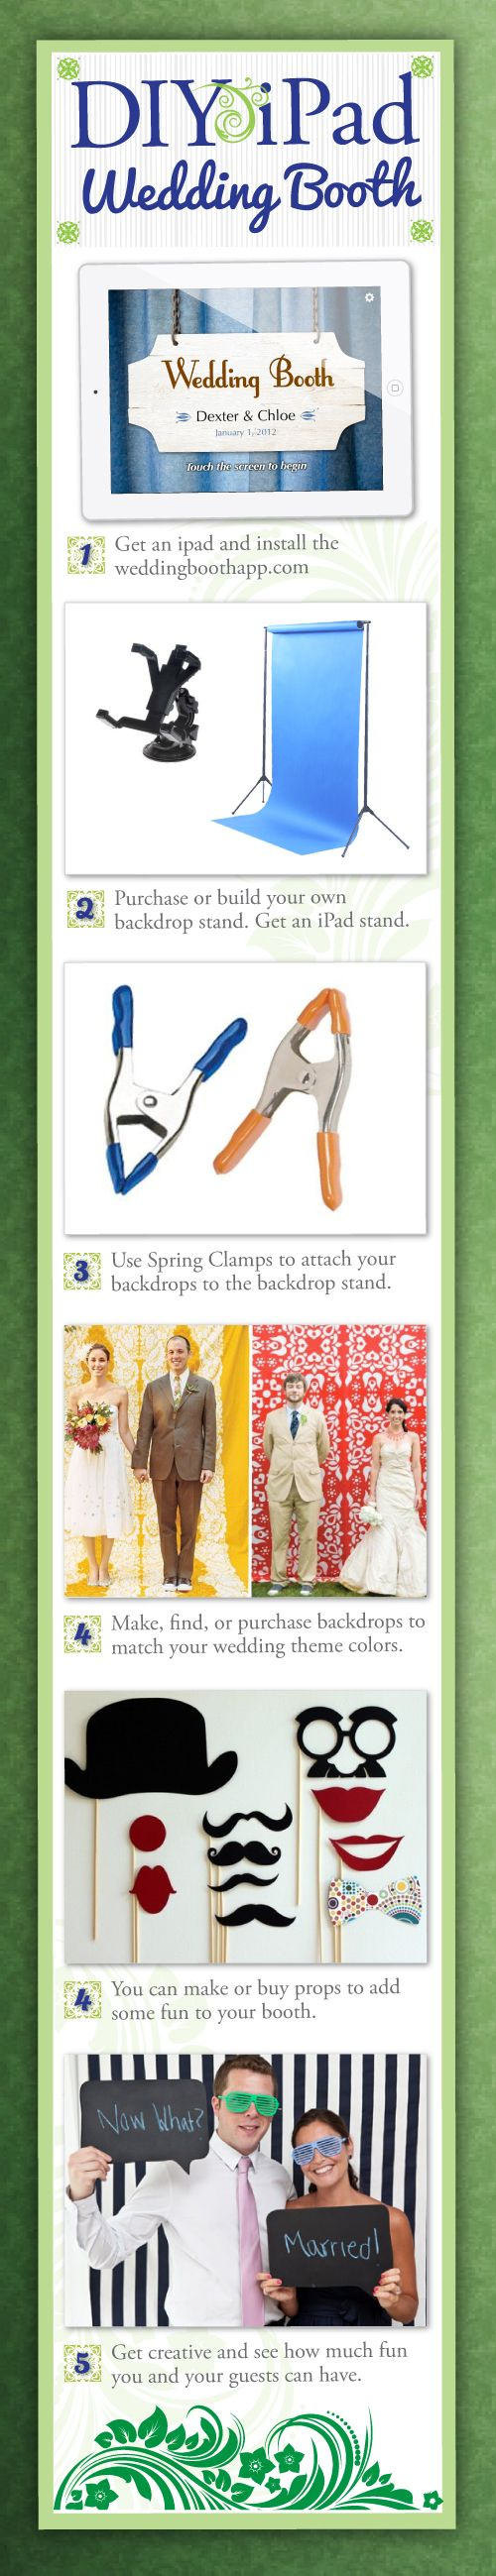 DIY Wedding Photo Booth. Such a cute idea! Gives you tons of options for backdrops too.